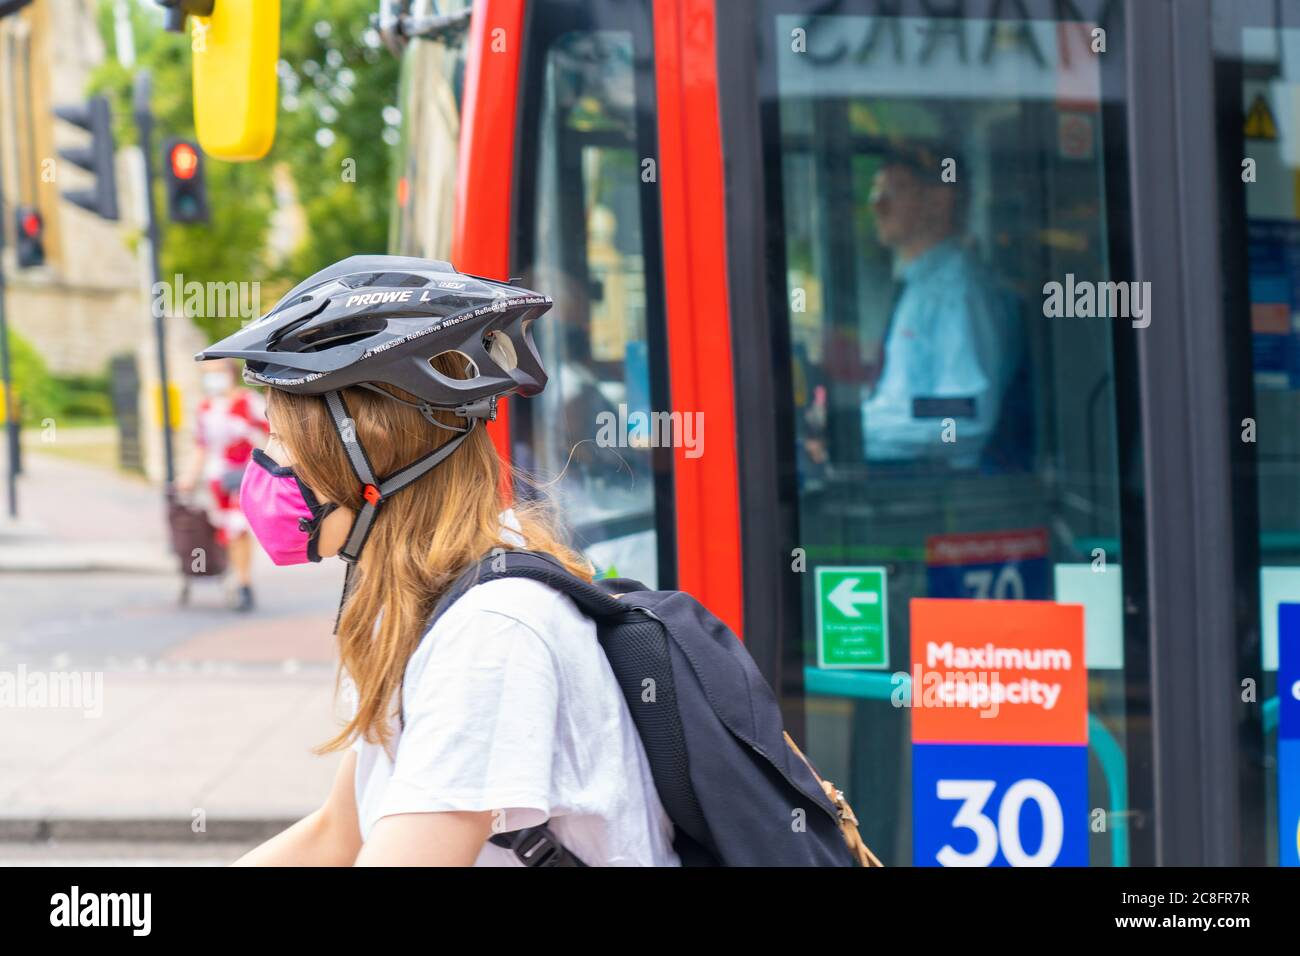 London Uk Friday 24 July 2020 A Cyclist Wearing A Protective Mask In Ealing On The